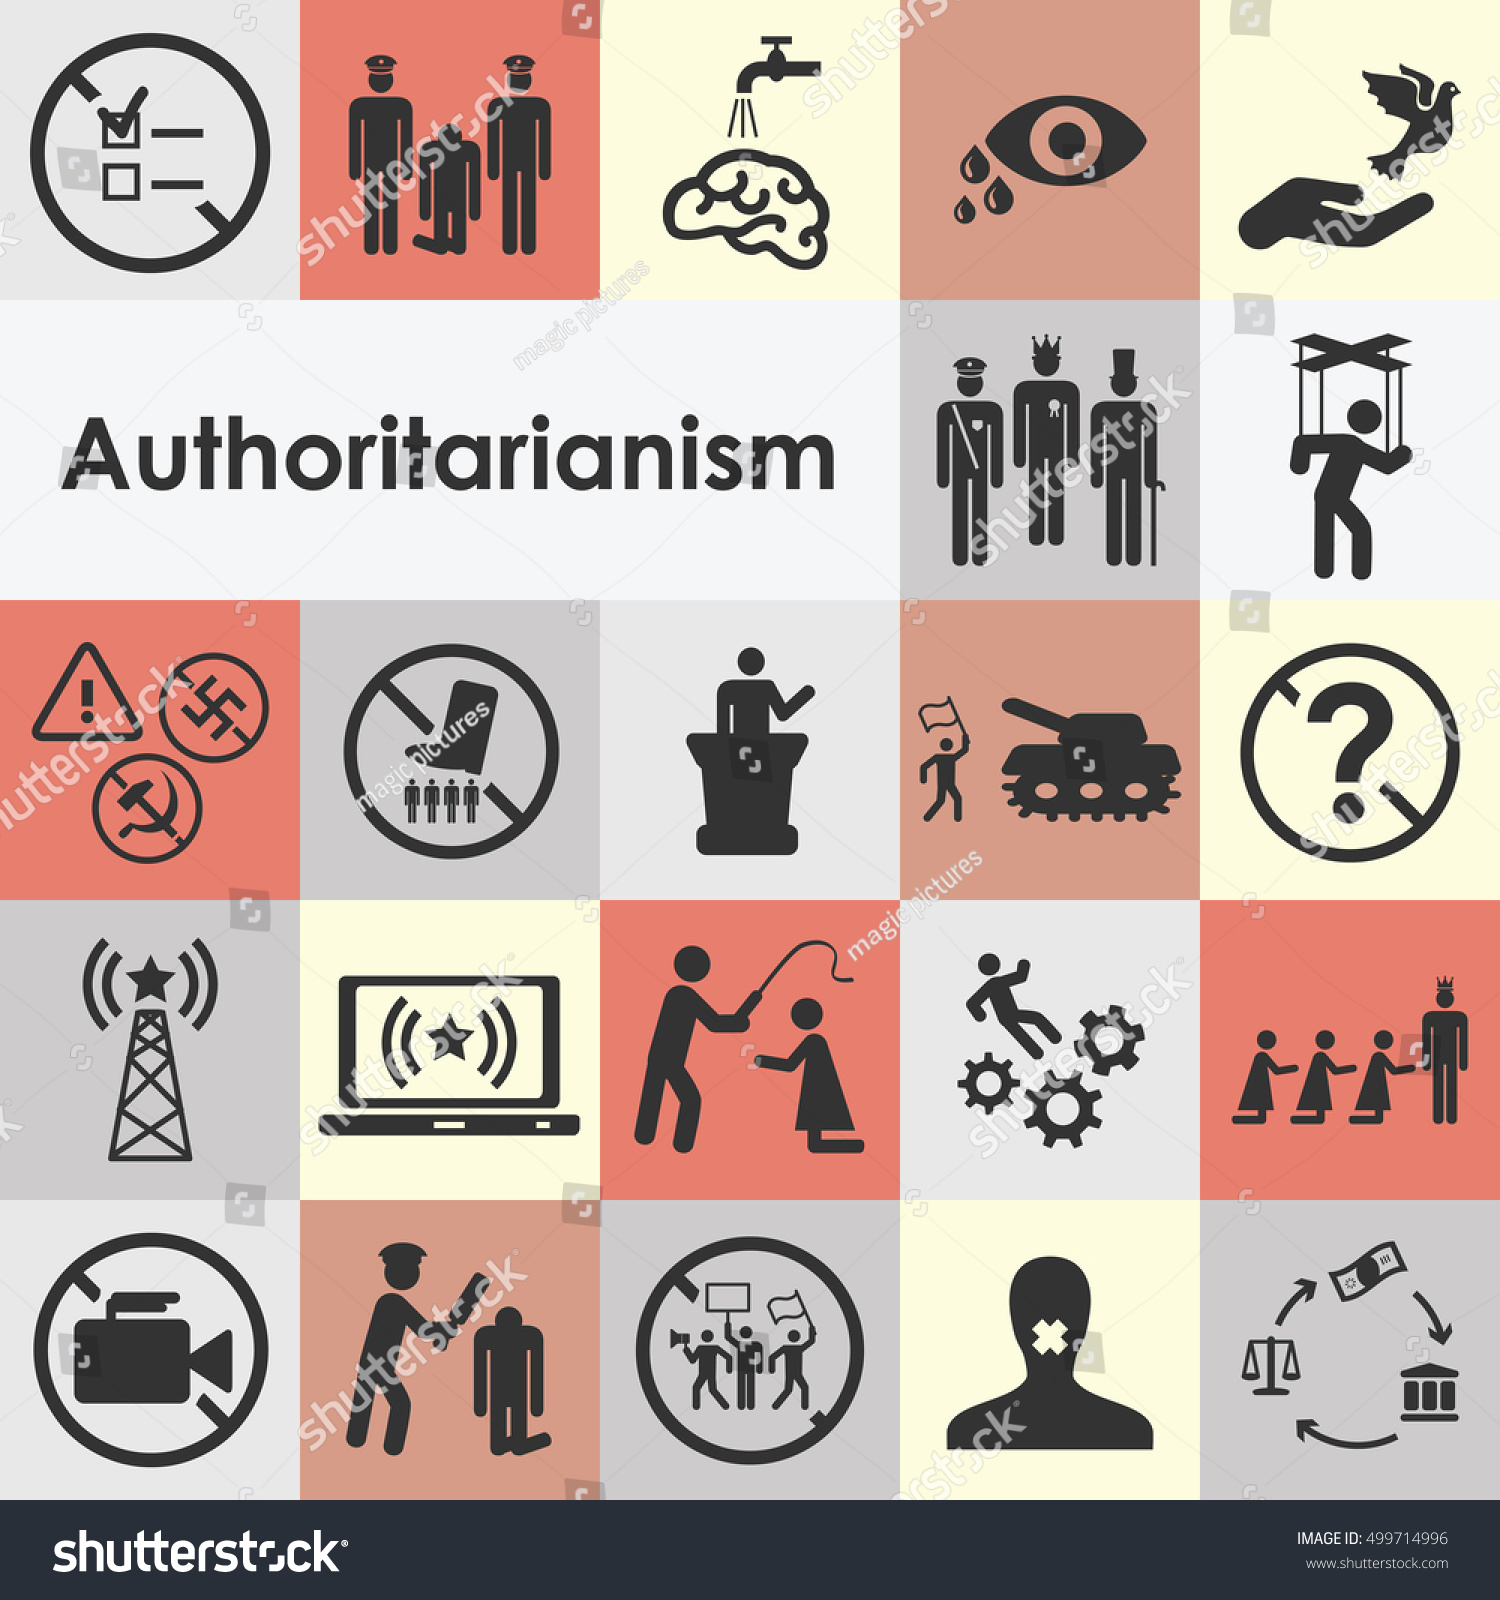 Vector illustration authoritarianism icons set dictator stock vector illustration of authoritarianism icons set for dictator style of rule concepts and fighting against regime biocorpaavc